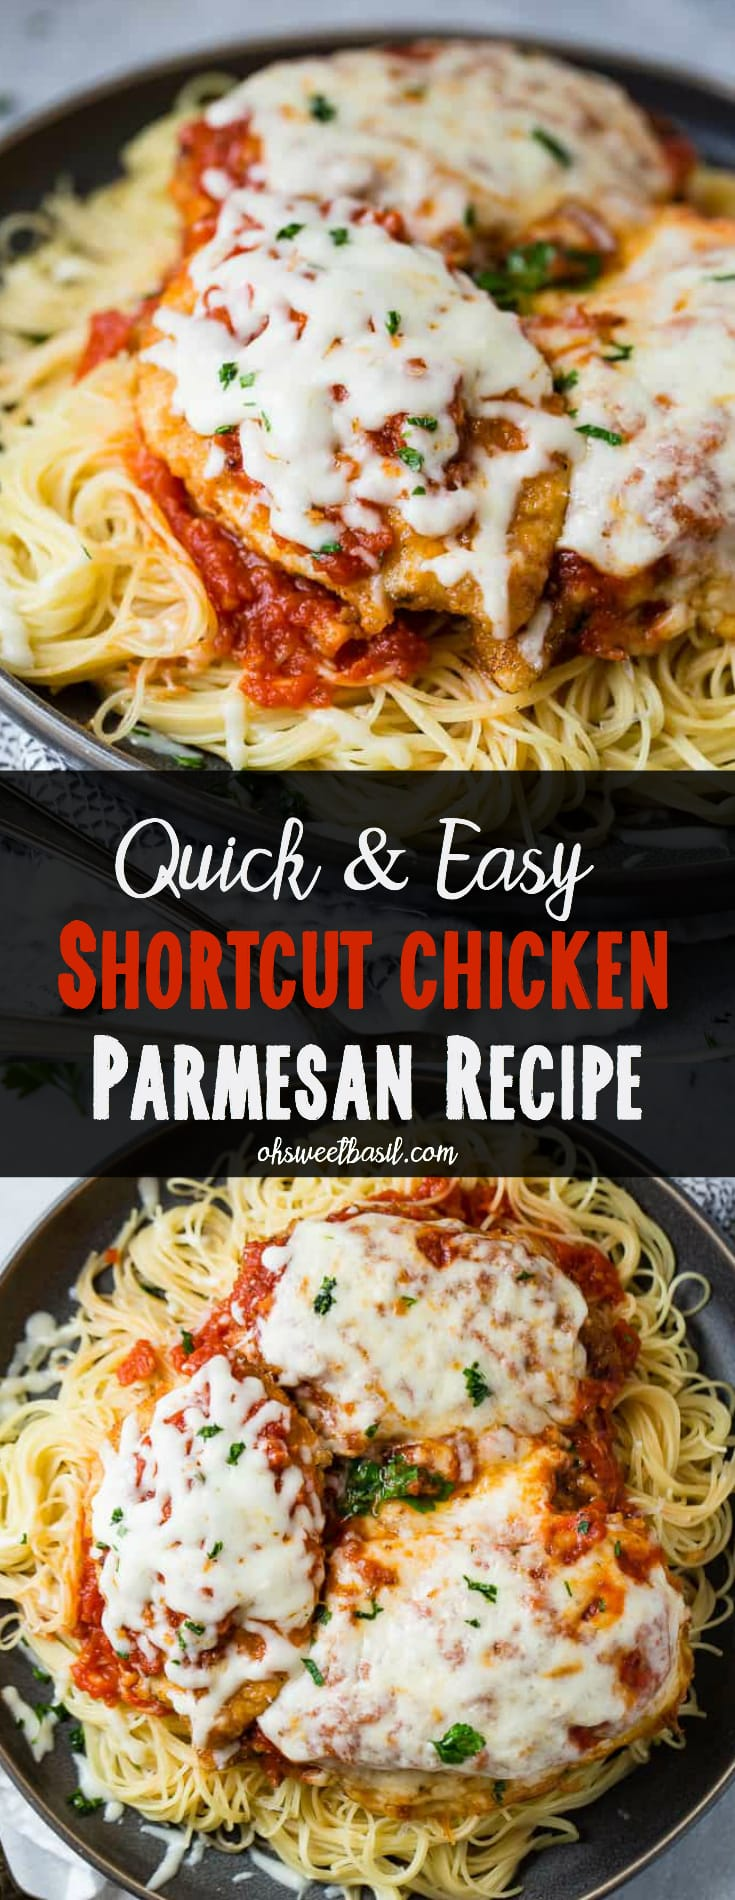 A dark grey platter filled with angel hair pasta, a little marinara tomato sauce, breaded chicken with marinara and melted mozzarella cheese and a sprinkle of chopped Italian flat leaf parsley. Quick and Easy shortcut chicken parmesan